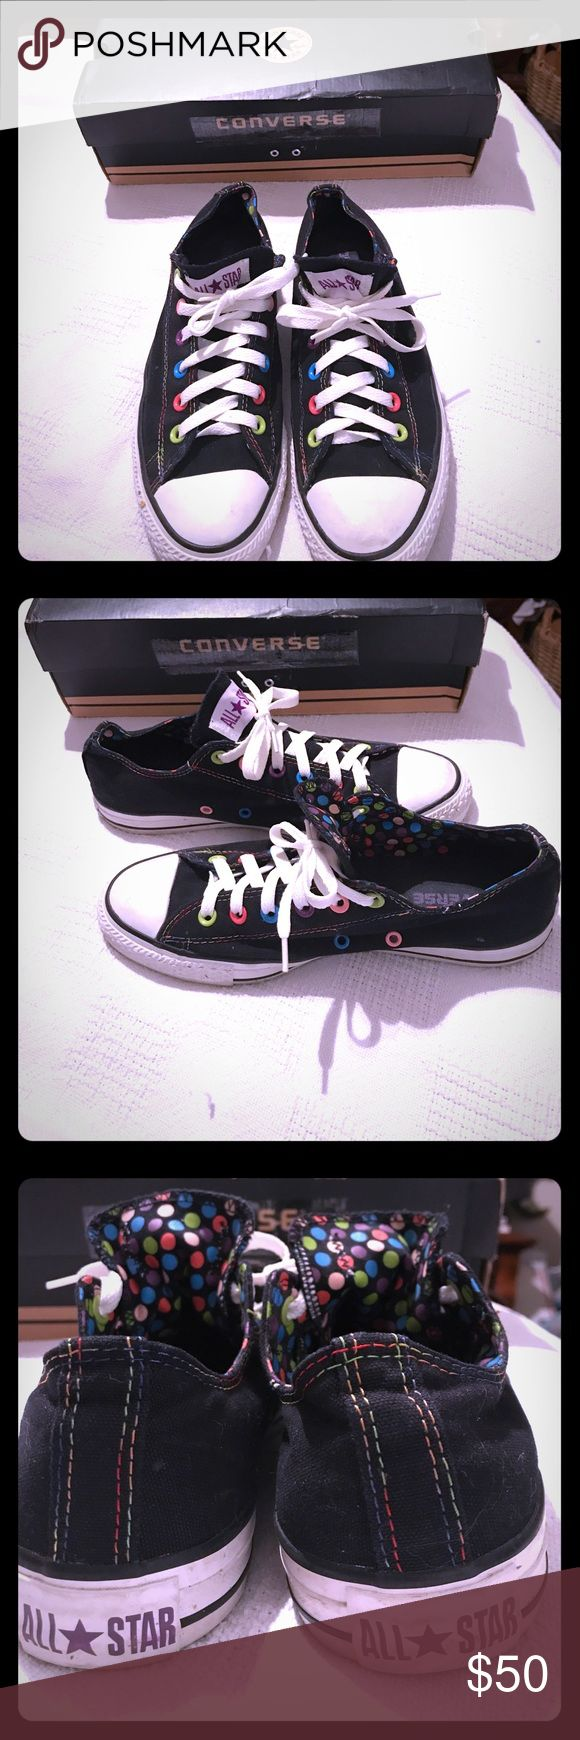 NWOT CONVERSE MEN 7/WOMEN 9 BLACK WITH POLK A DOT NWOT CONVERSE SHOES MEN 7 OR WOMEN 9 BLACK WITH POLK A DOT TOUNGE AND INSIDE! PRETTY! (HAVE BOX) Converse Shoes Sneakers